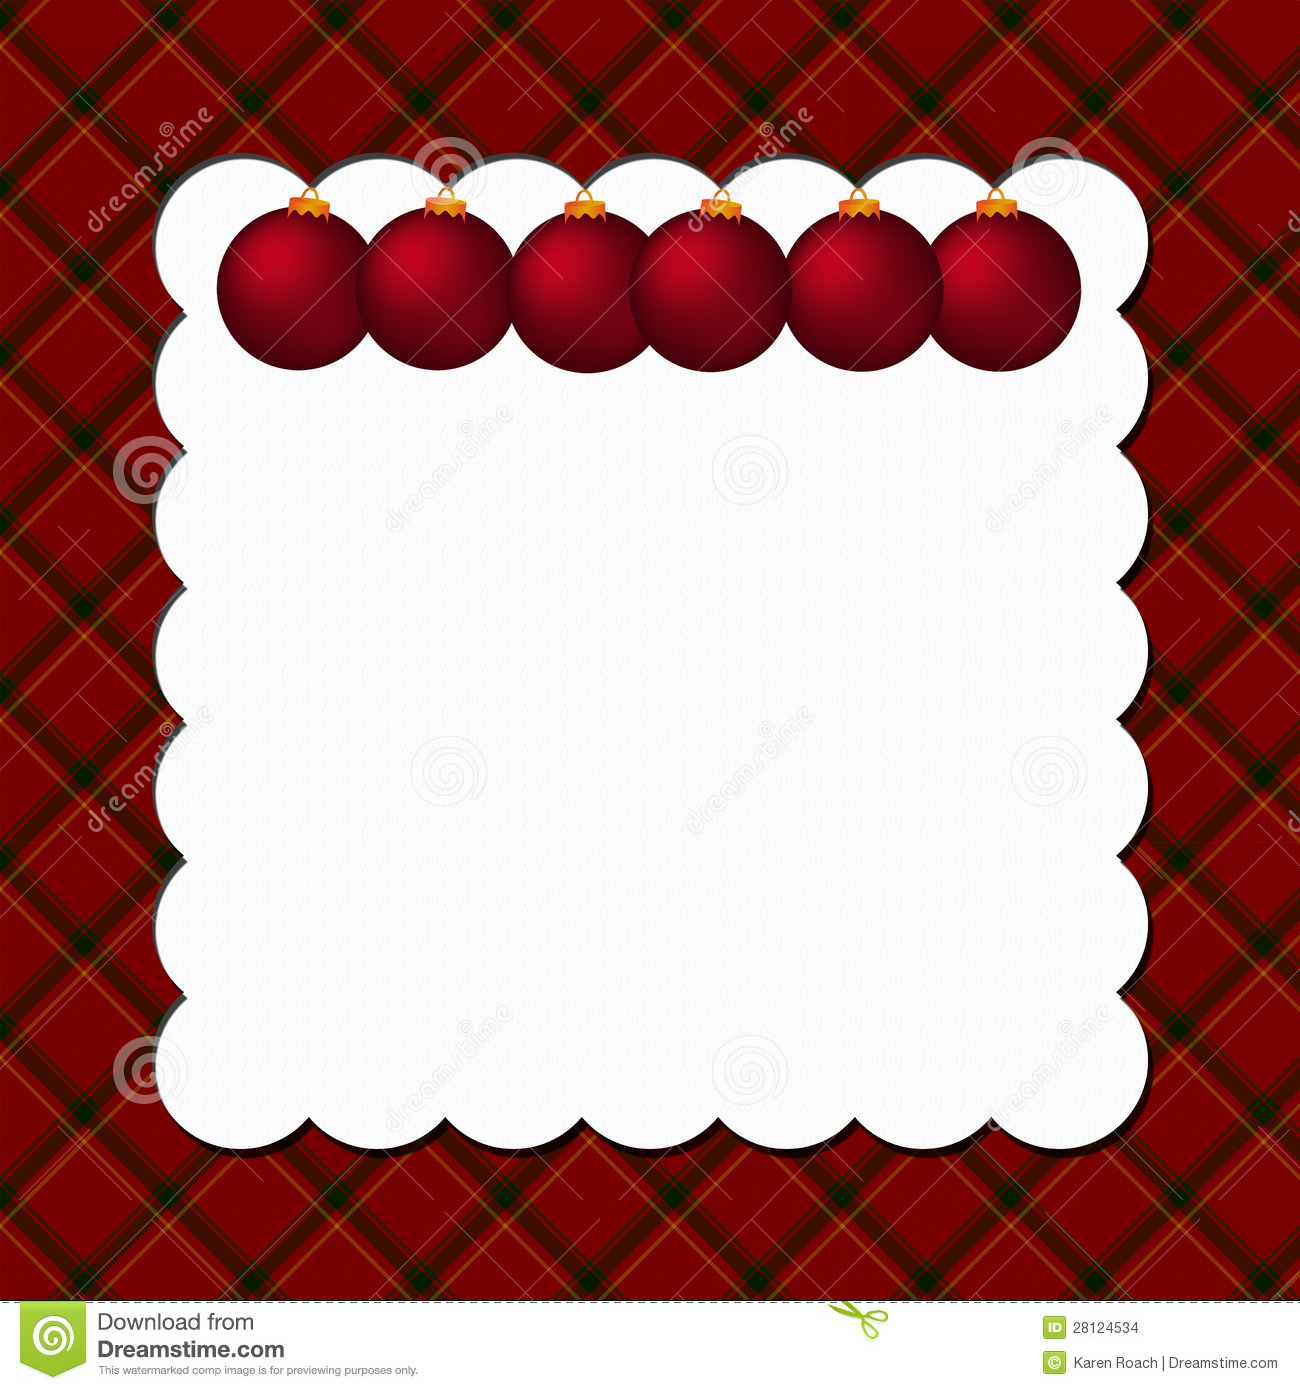 Christmas Plaid Background With Ornaments Stock Images - Image: 28124534